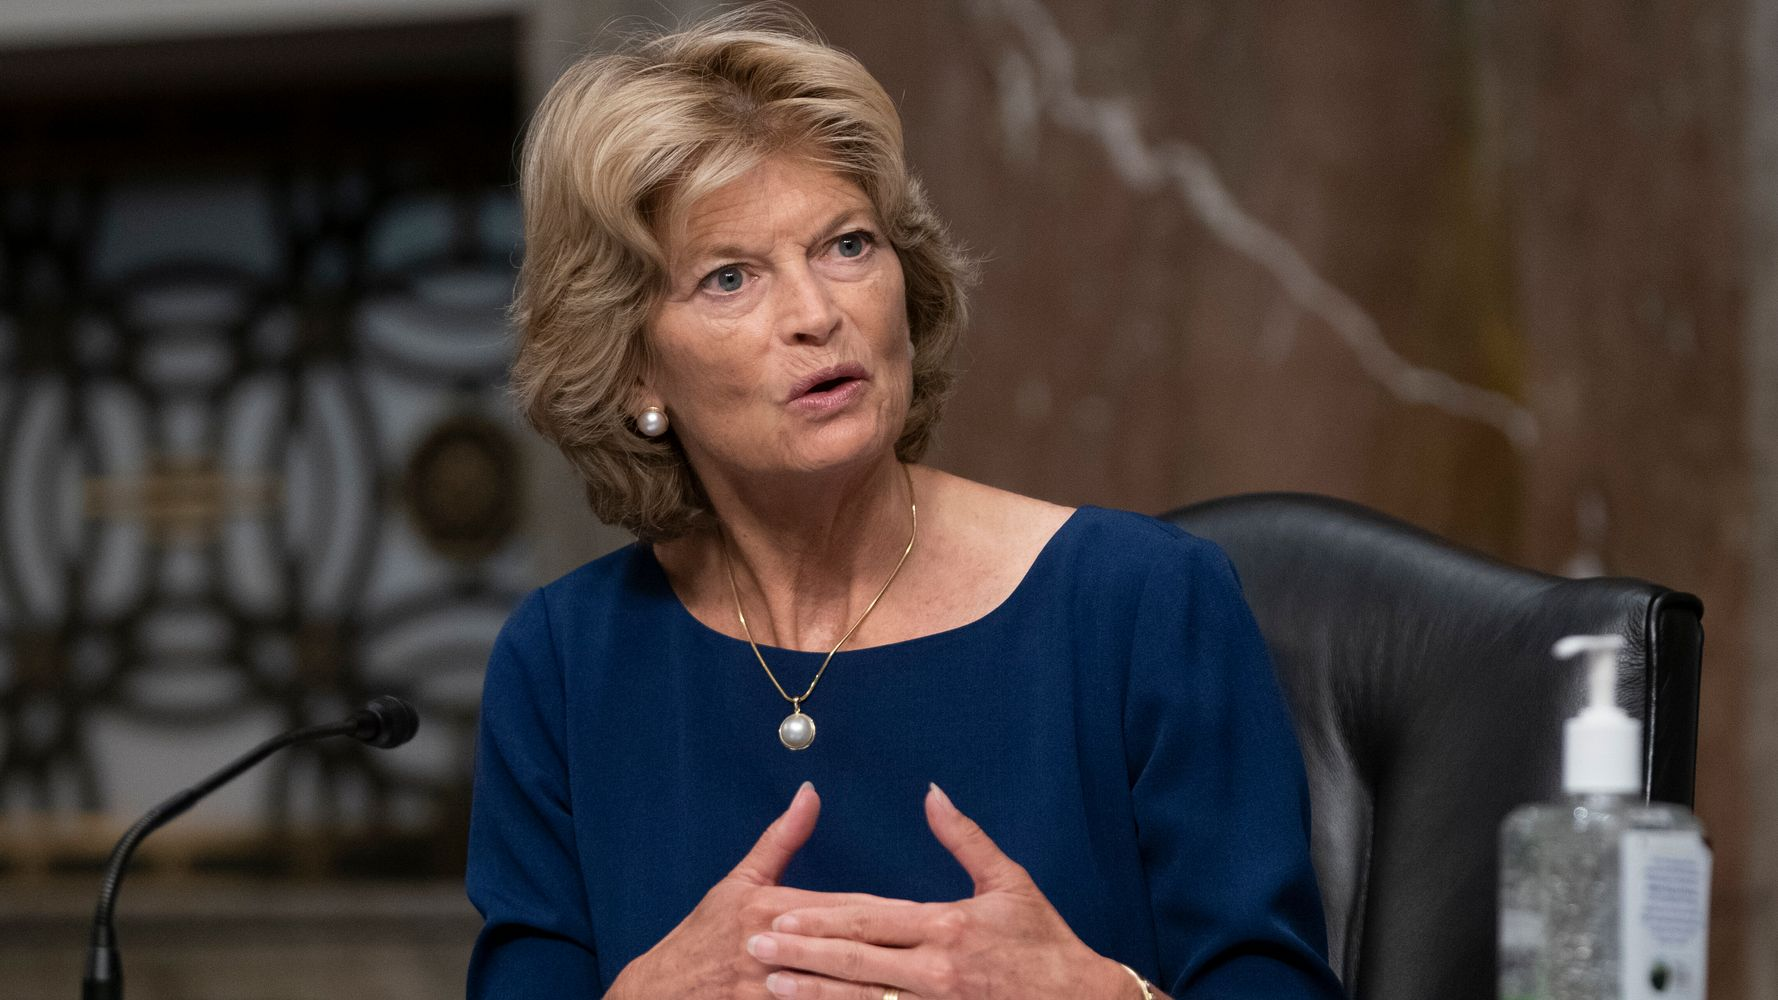 Murkowski Says It's 'Time' To Begin Biden Transition, Blasts Trump For Election Attacks